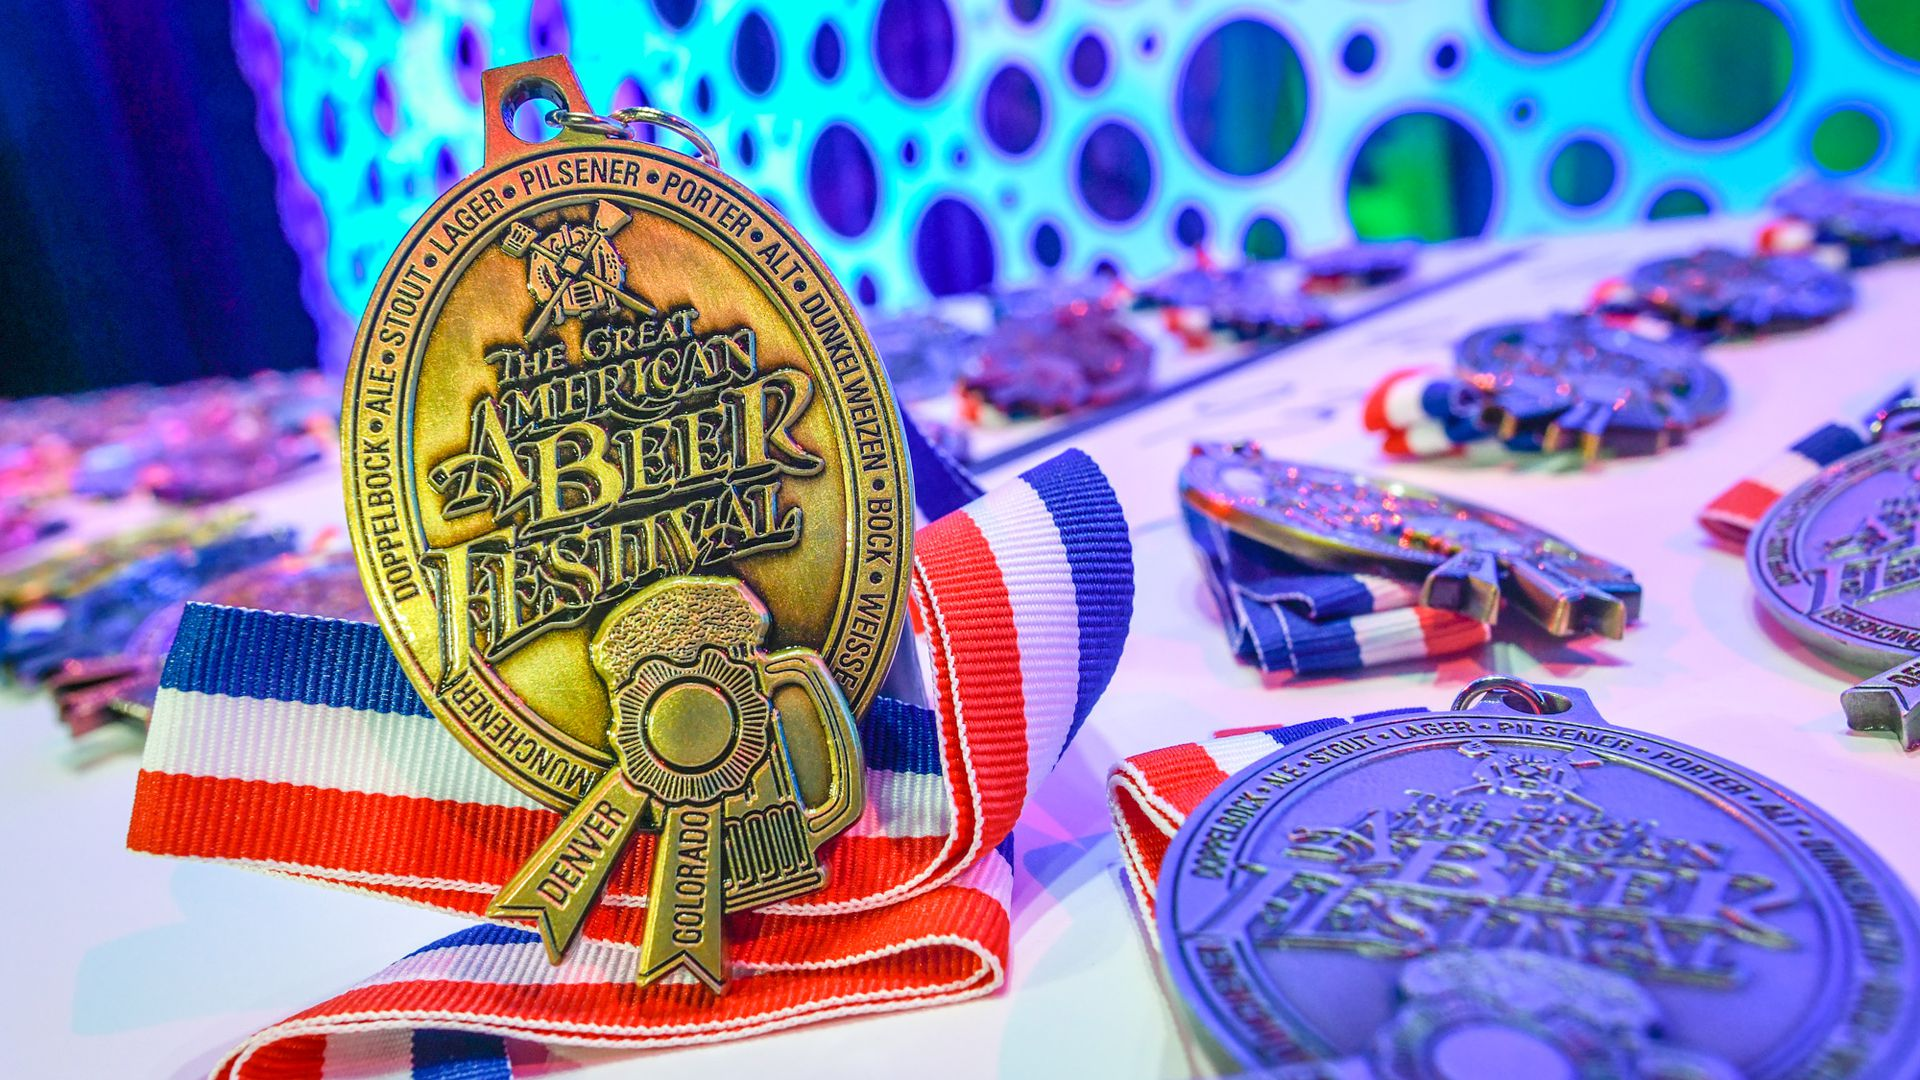 A GABF medal sits on a table ahead of the awards ceremony in 2021. Photo courtesy of the Brewers Association